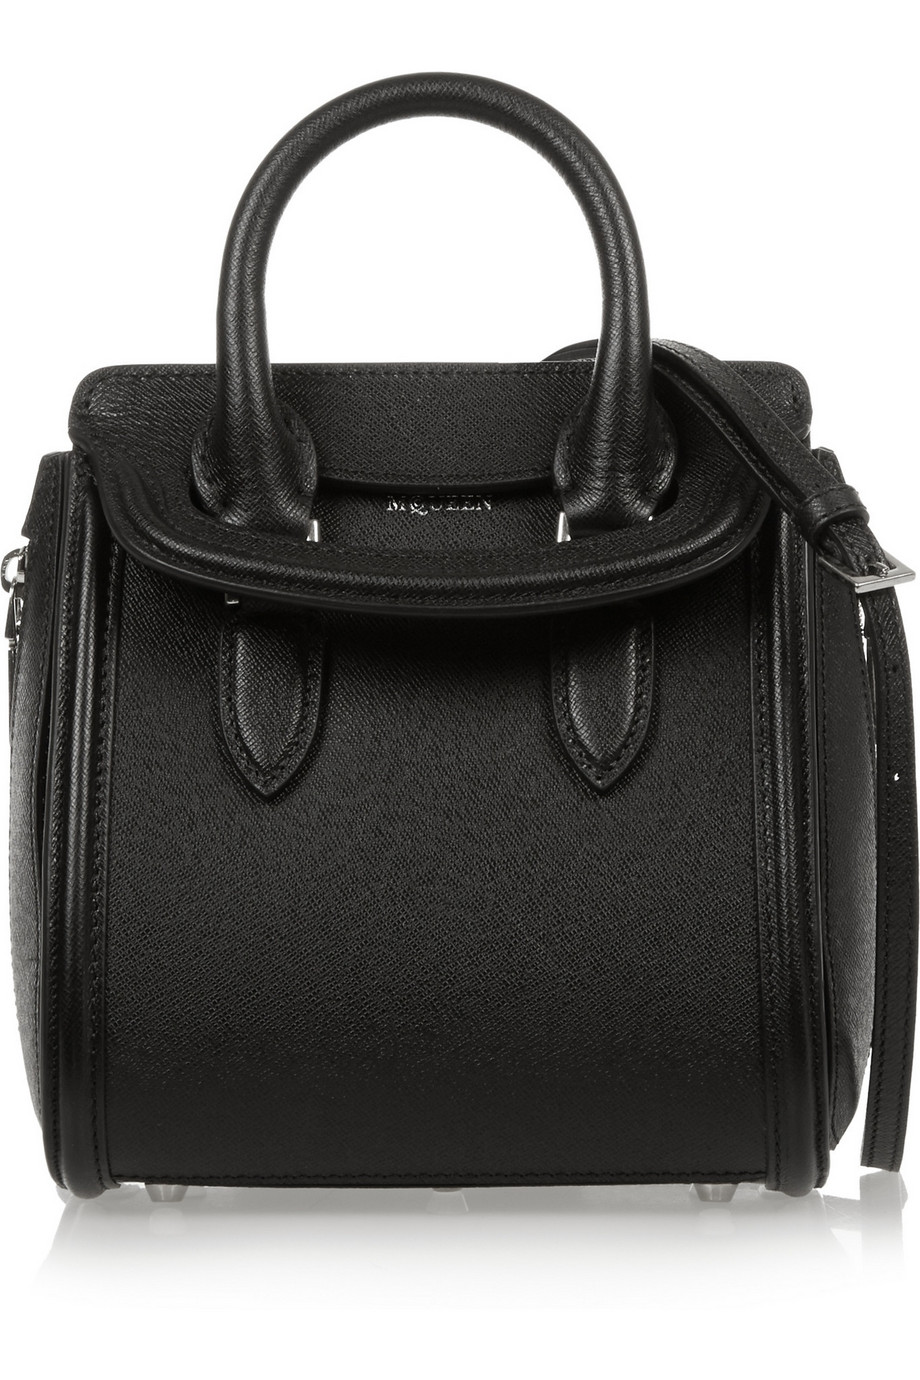 Alexander Mcqueen The Heroine Mini Textured-Leather Shoulder Bag, Black, Women's, Size: One Size